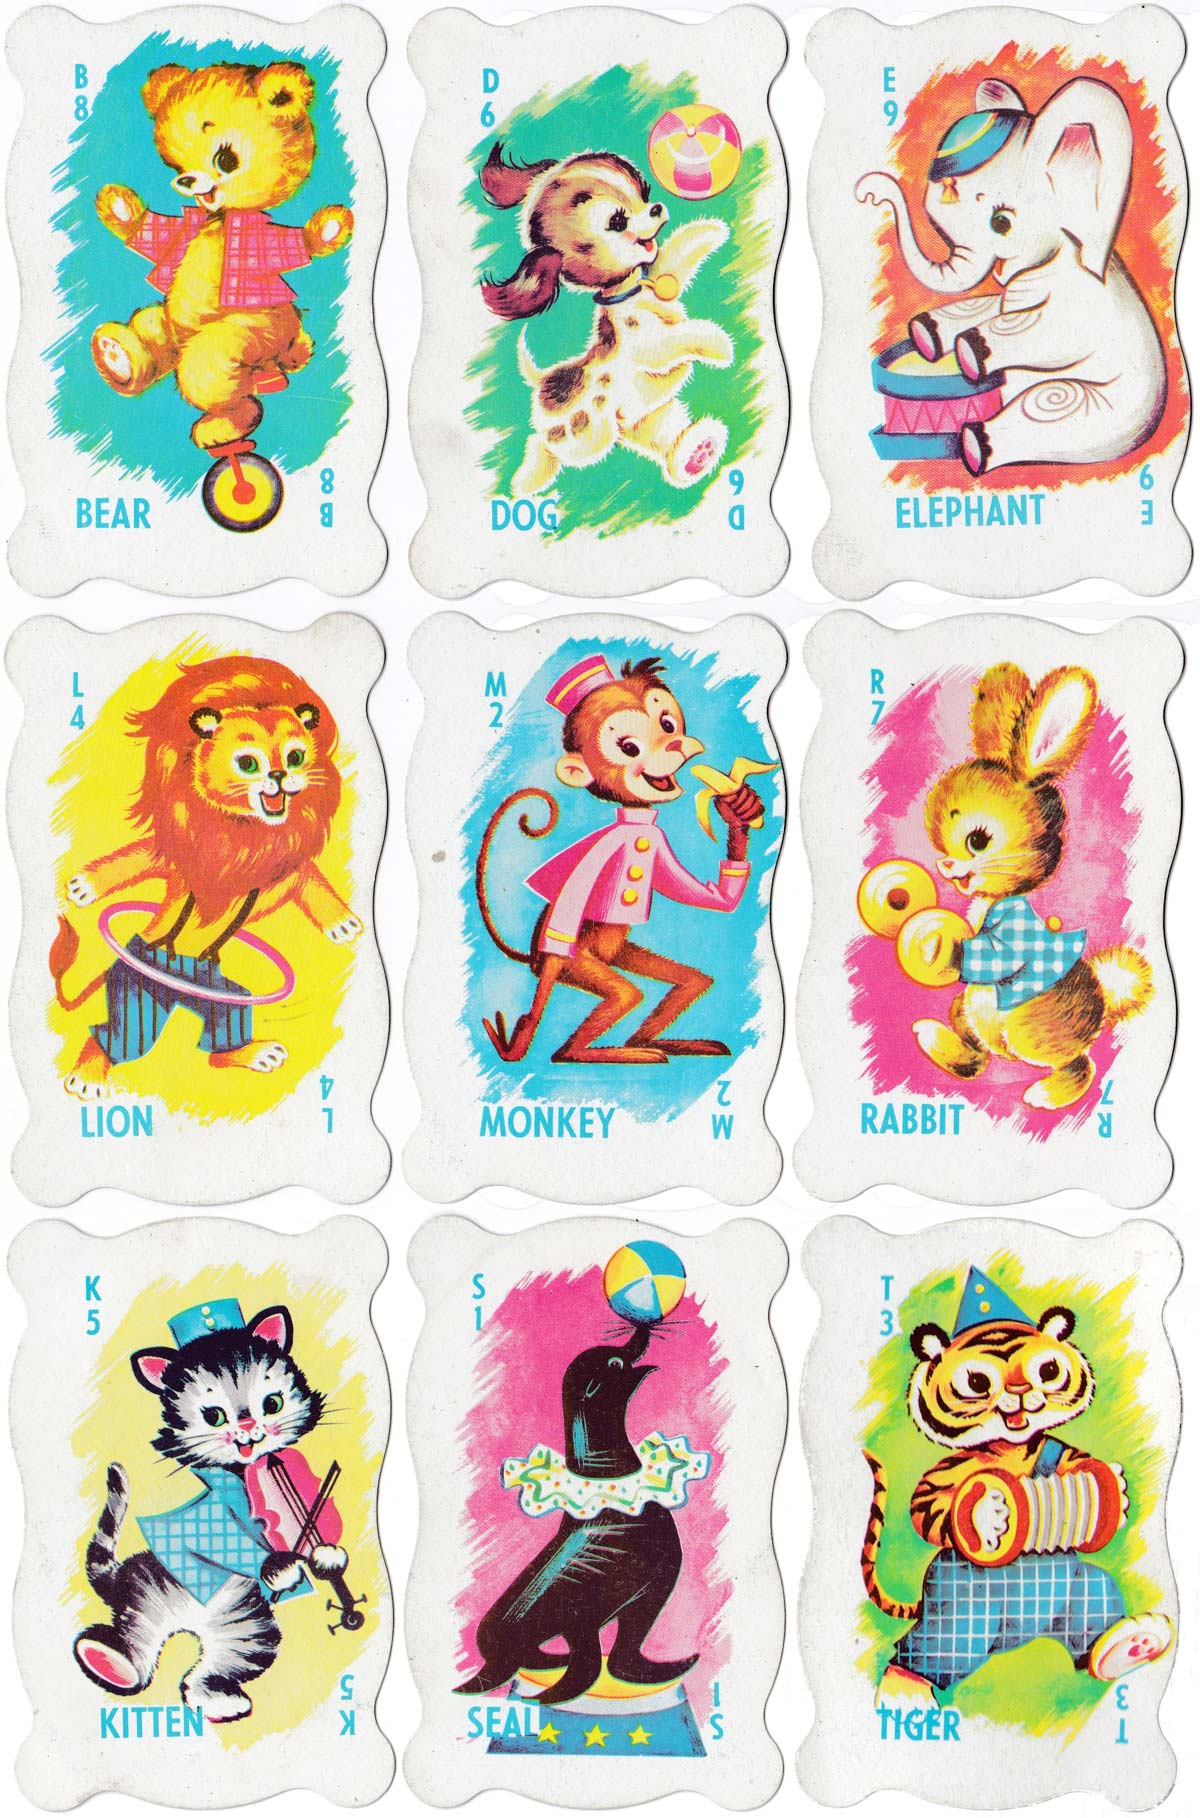 Zoo Fun card game no.445 by Warren Paper Products, c.1960s